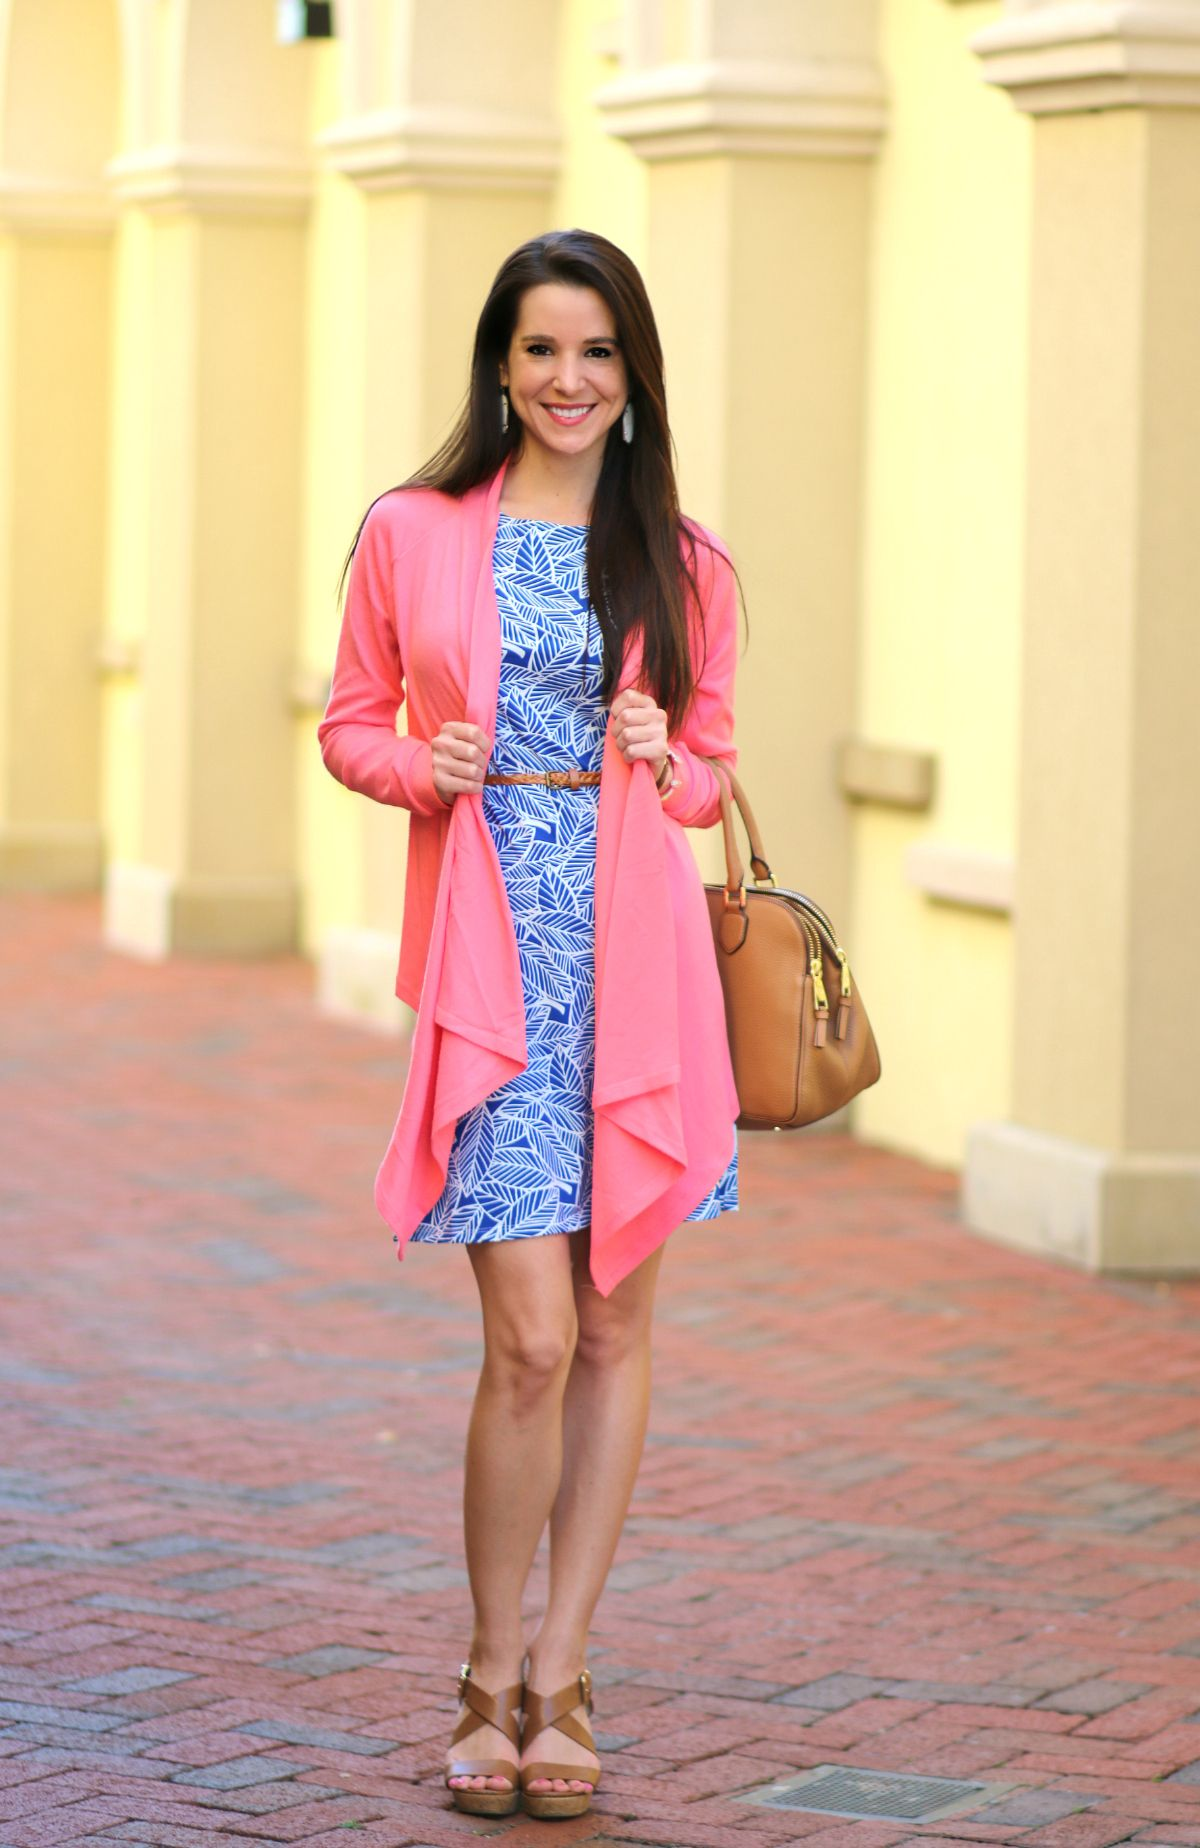 Floridian Fall Style: Coral Waterfall Cardigan | Debutante ...